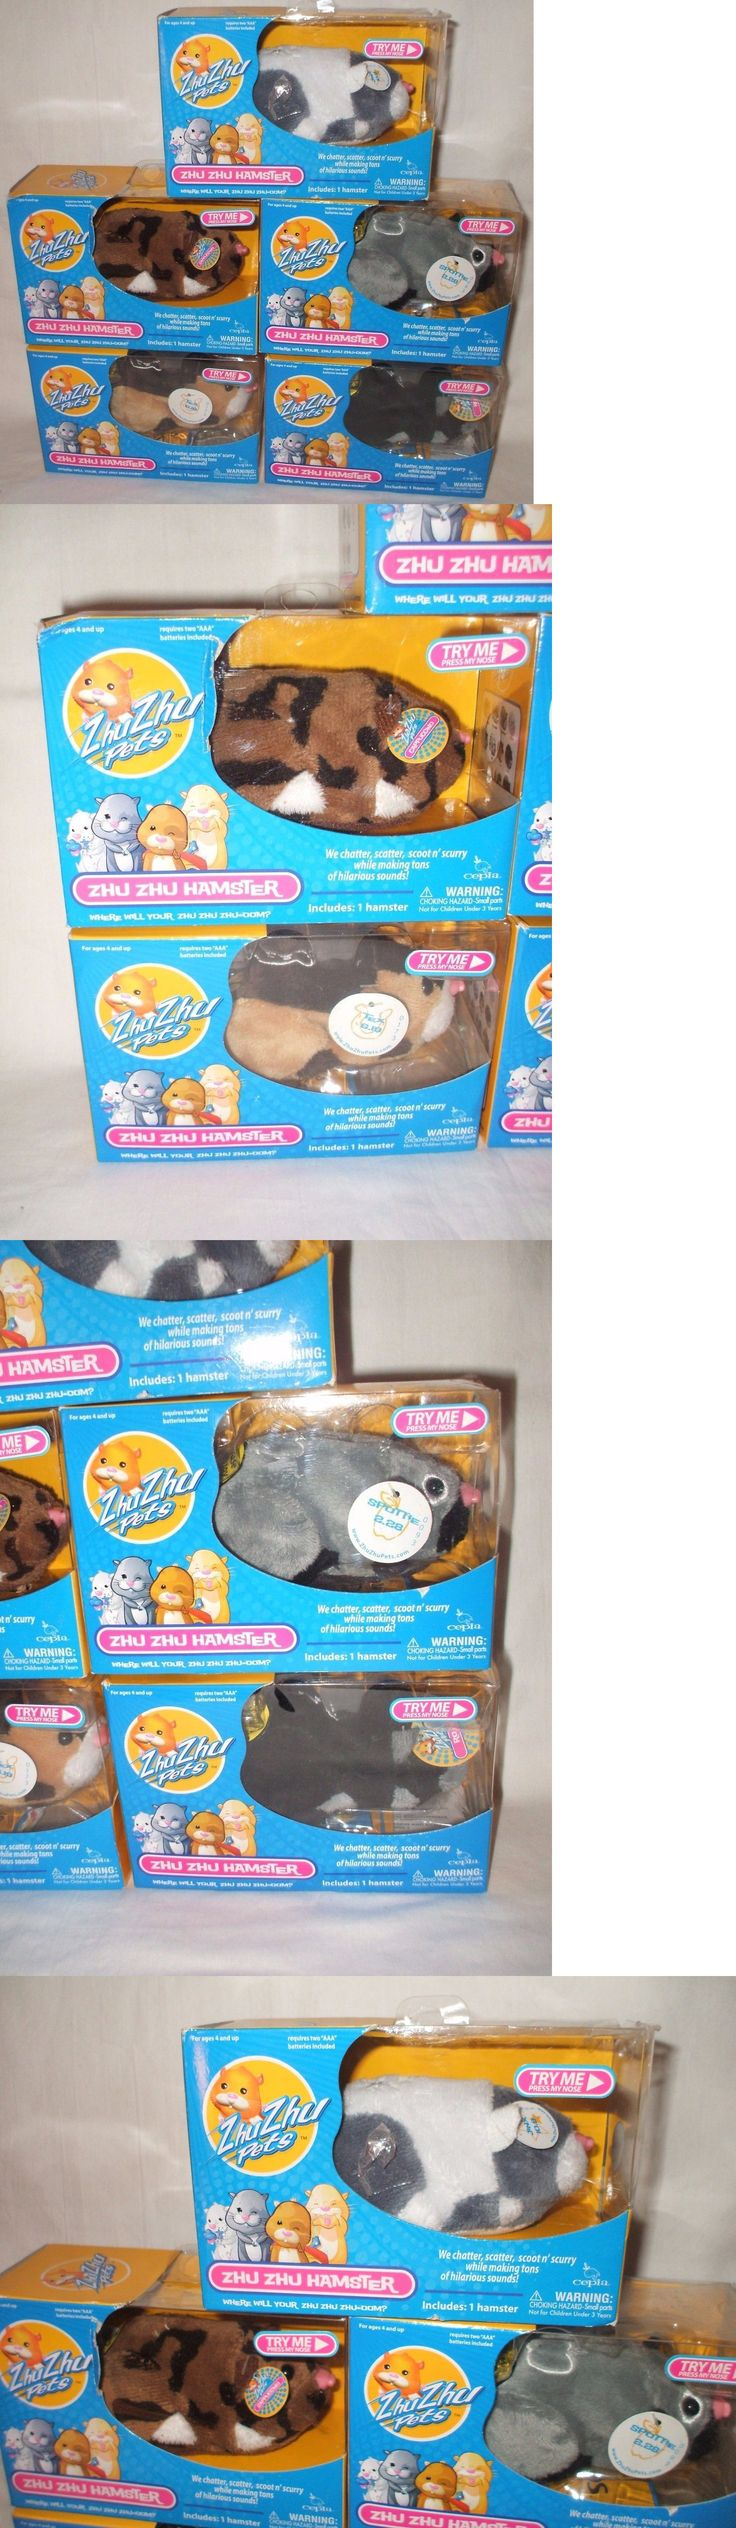 Zhu Zhu Pets 171529: 5 Zhu Zhu Pets Hamsters Rocky Tex Jinx Cappuccino Spottie Toy New In Package -> BUY IT NOW ONLY: $38 on eBay!